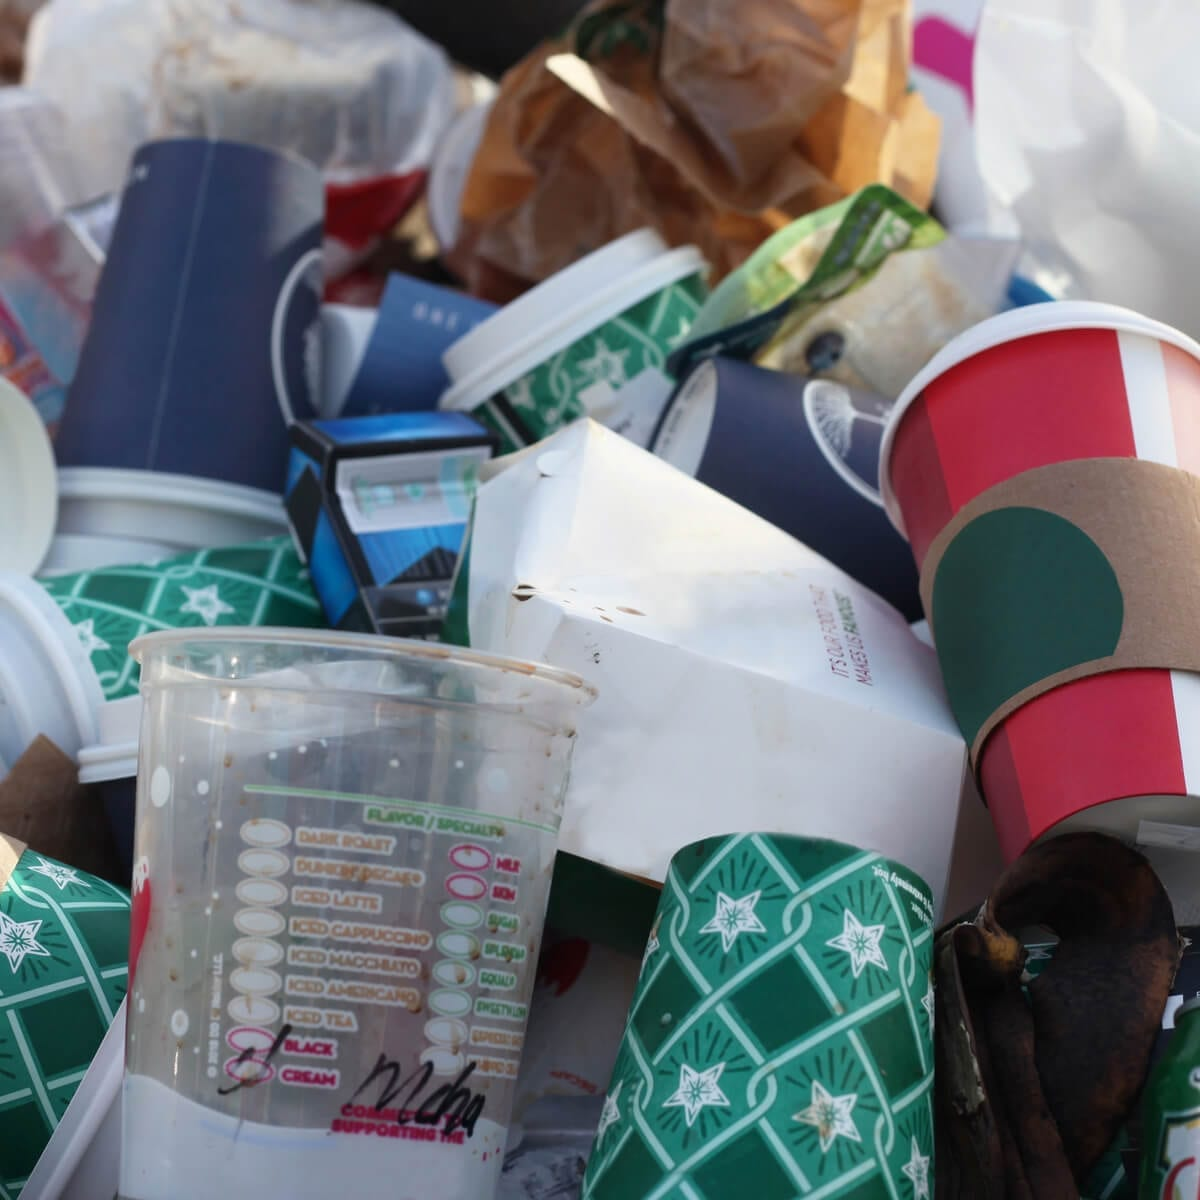 a pile of recycled materials including plastic cups, coffee cups